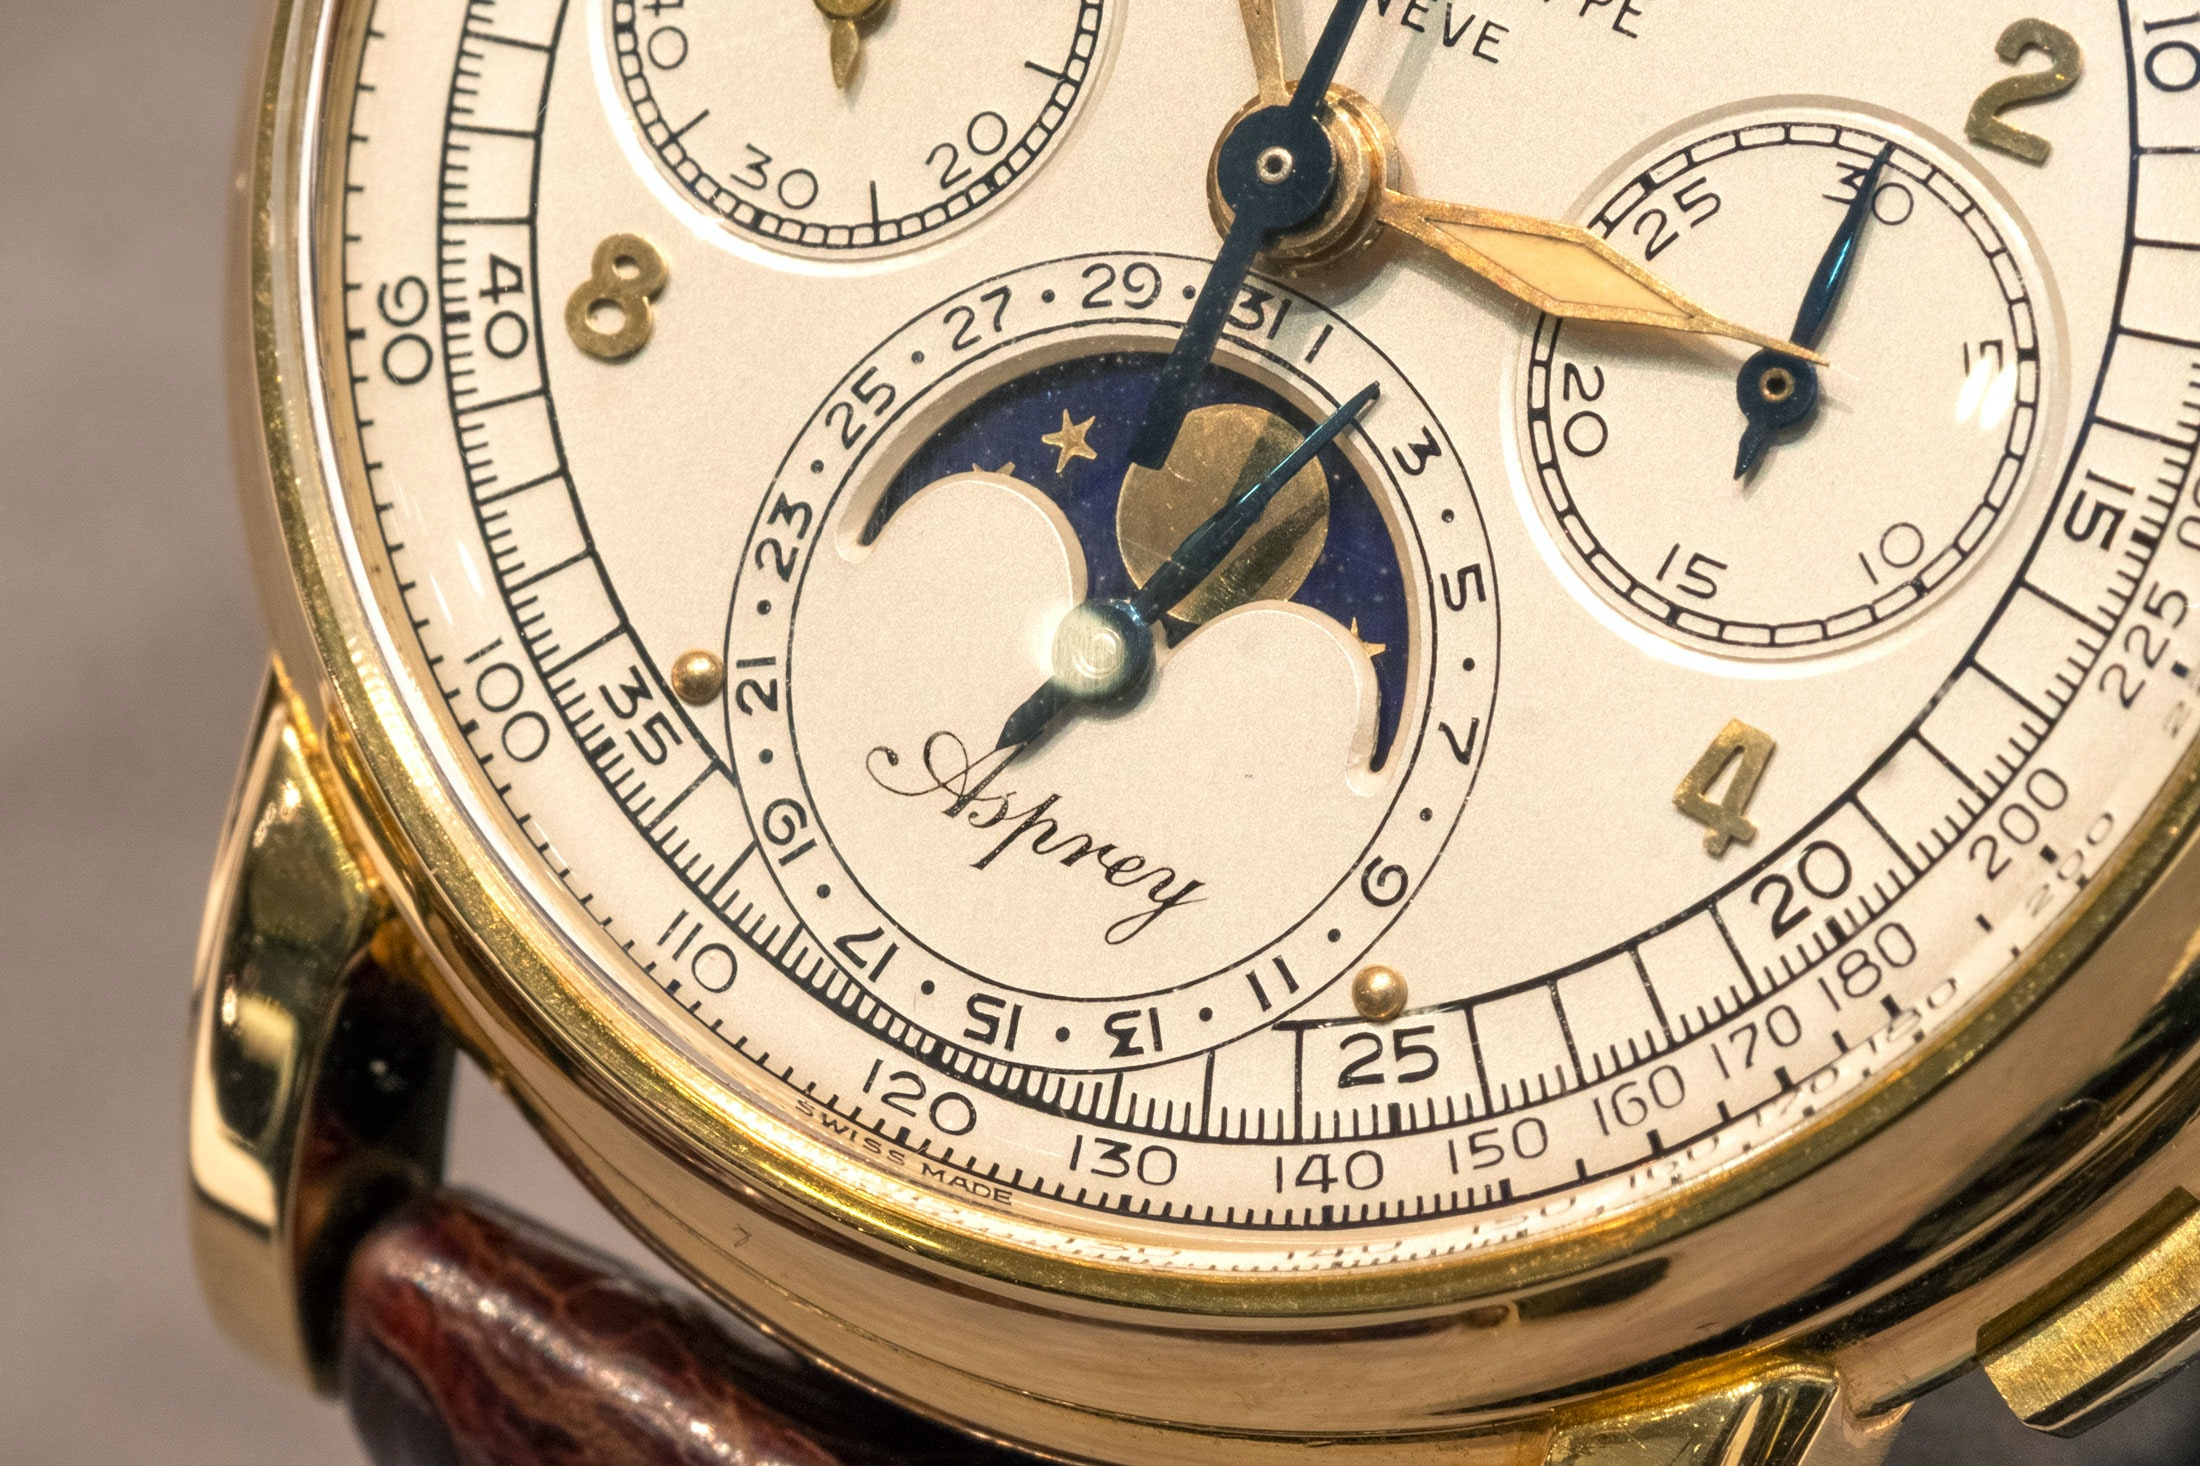 Breaking News: The Only Known Asprey-Signed Patek Philippe Ref. 2499 Sells For $3.88 Million At Sotheby's, Setting A New World Record sothebys 02